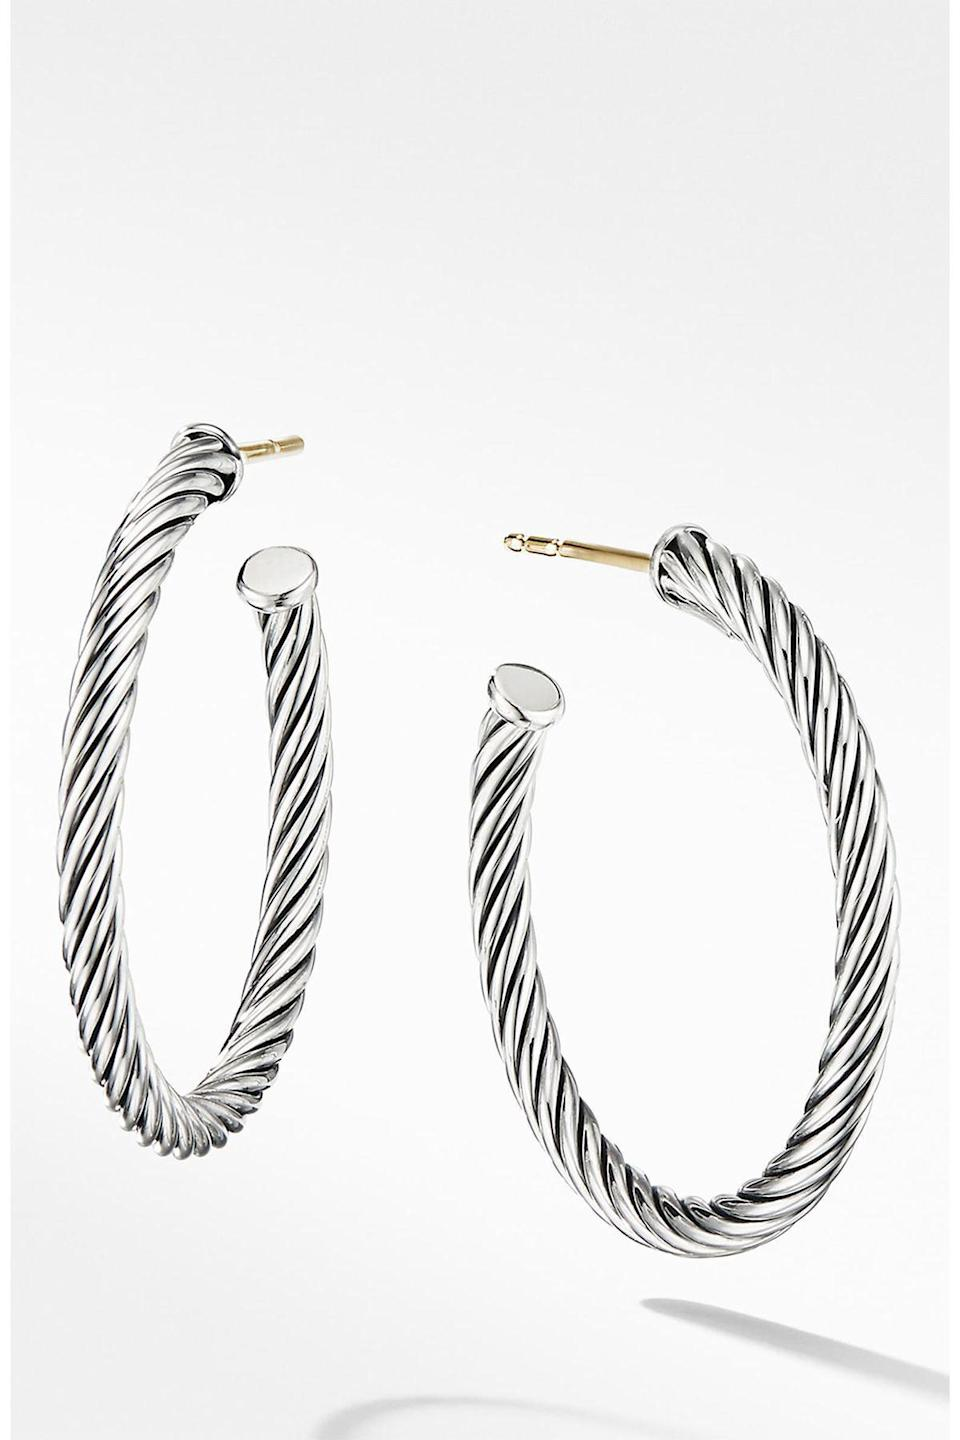 """<p><strong>David Yurman</strong></p><p>nordstrom.com</p><p><strong>$325.00</strong></p><p><a href=""""https://go.redirectingat.com?id=74968X1596630&url=https%3A%2F%2Fshop.nordstrom.com%2Fs%2Fdavid-yurman-cable-loop-hoop-earrings%2F5138612&sref=https%3A%2F%2Fwww.townandcountrymag.com%2Fstyle%2Fjewelry-and-watches%2Fg33469392%2Fthe-weekly-covet-july-31-2020%2F"""" rel=""""nofollow noopener"""" target=""""_blank"""" data-ylk=""""slk:Shop Now"""" class=""""link rapid-noclick-resp"""">Shop Now</a></p><p>Classic with a twist -- literally. Upgrade your favorite silver hoops for a pair with some texture.</p>"""